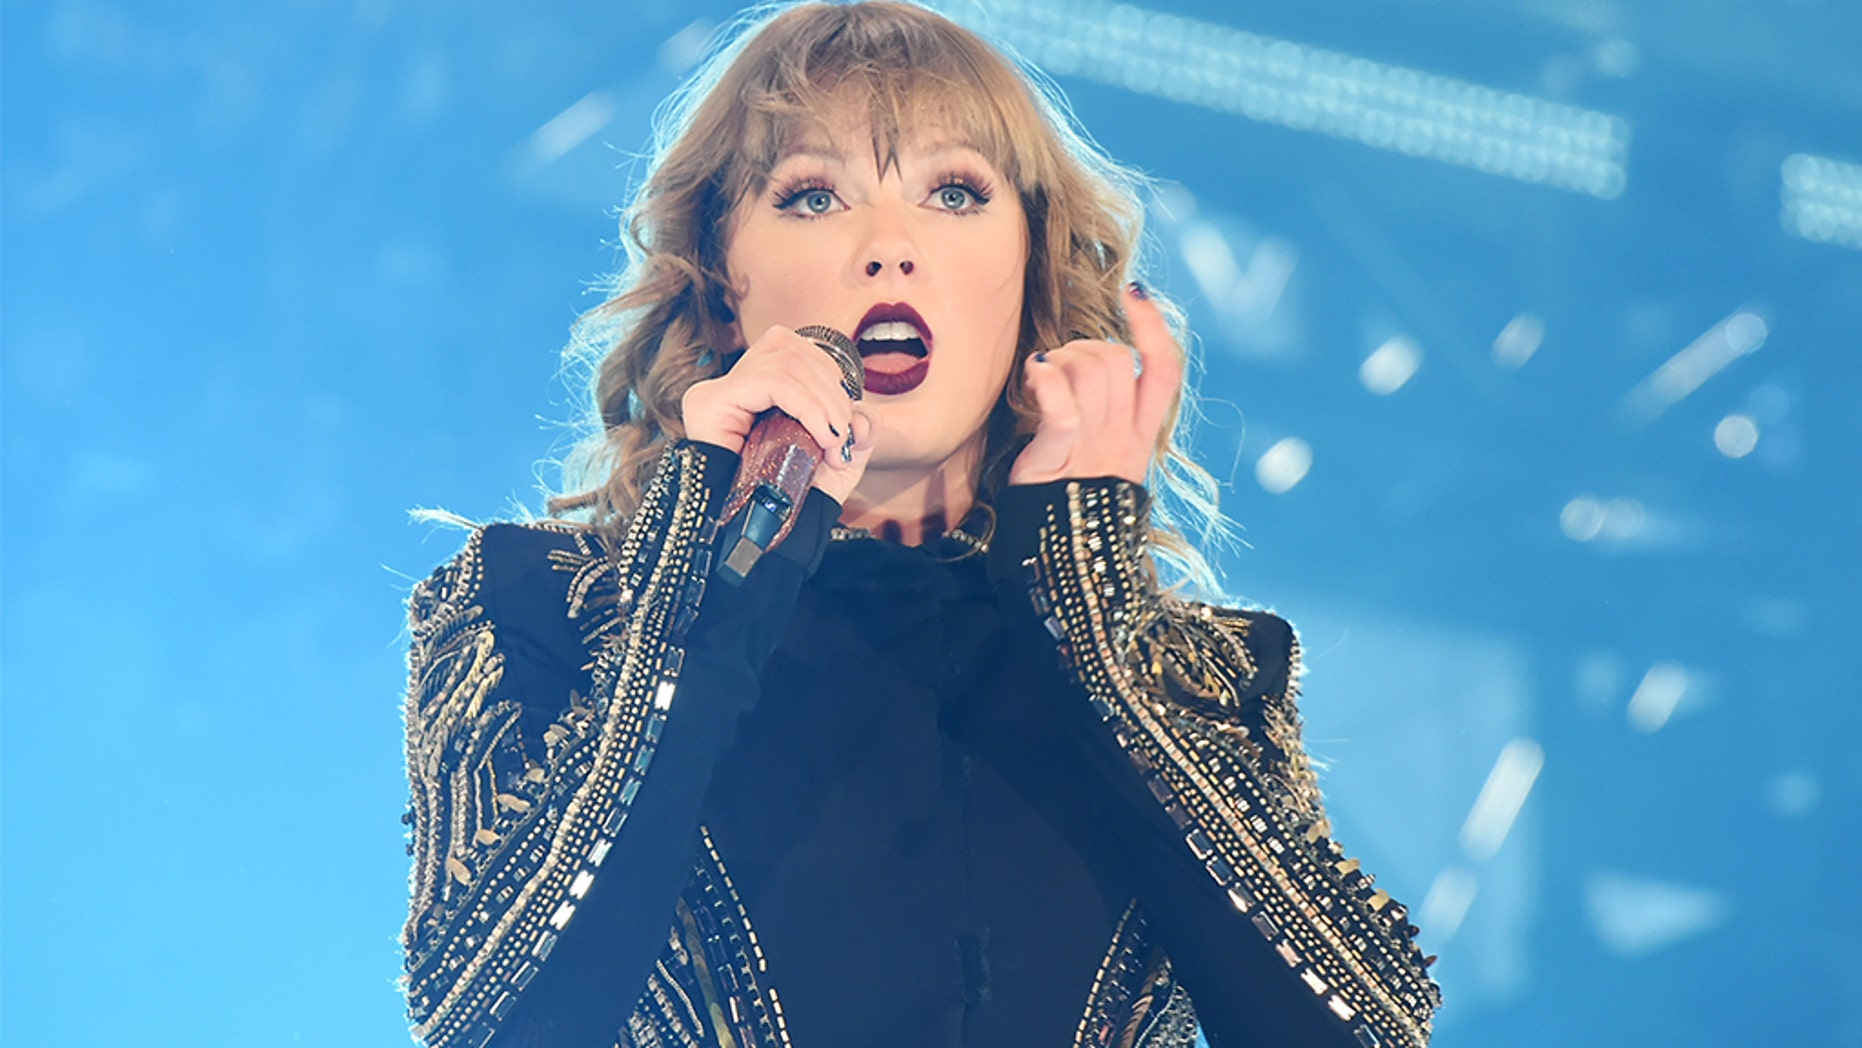 Taylor Swift fans are upset by her snub at the 2019 Grammy Awards